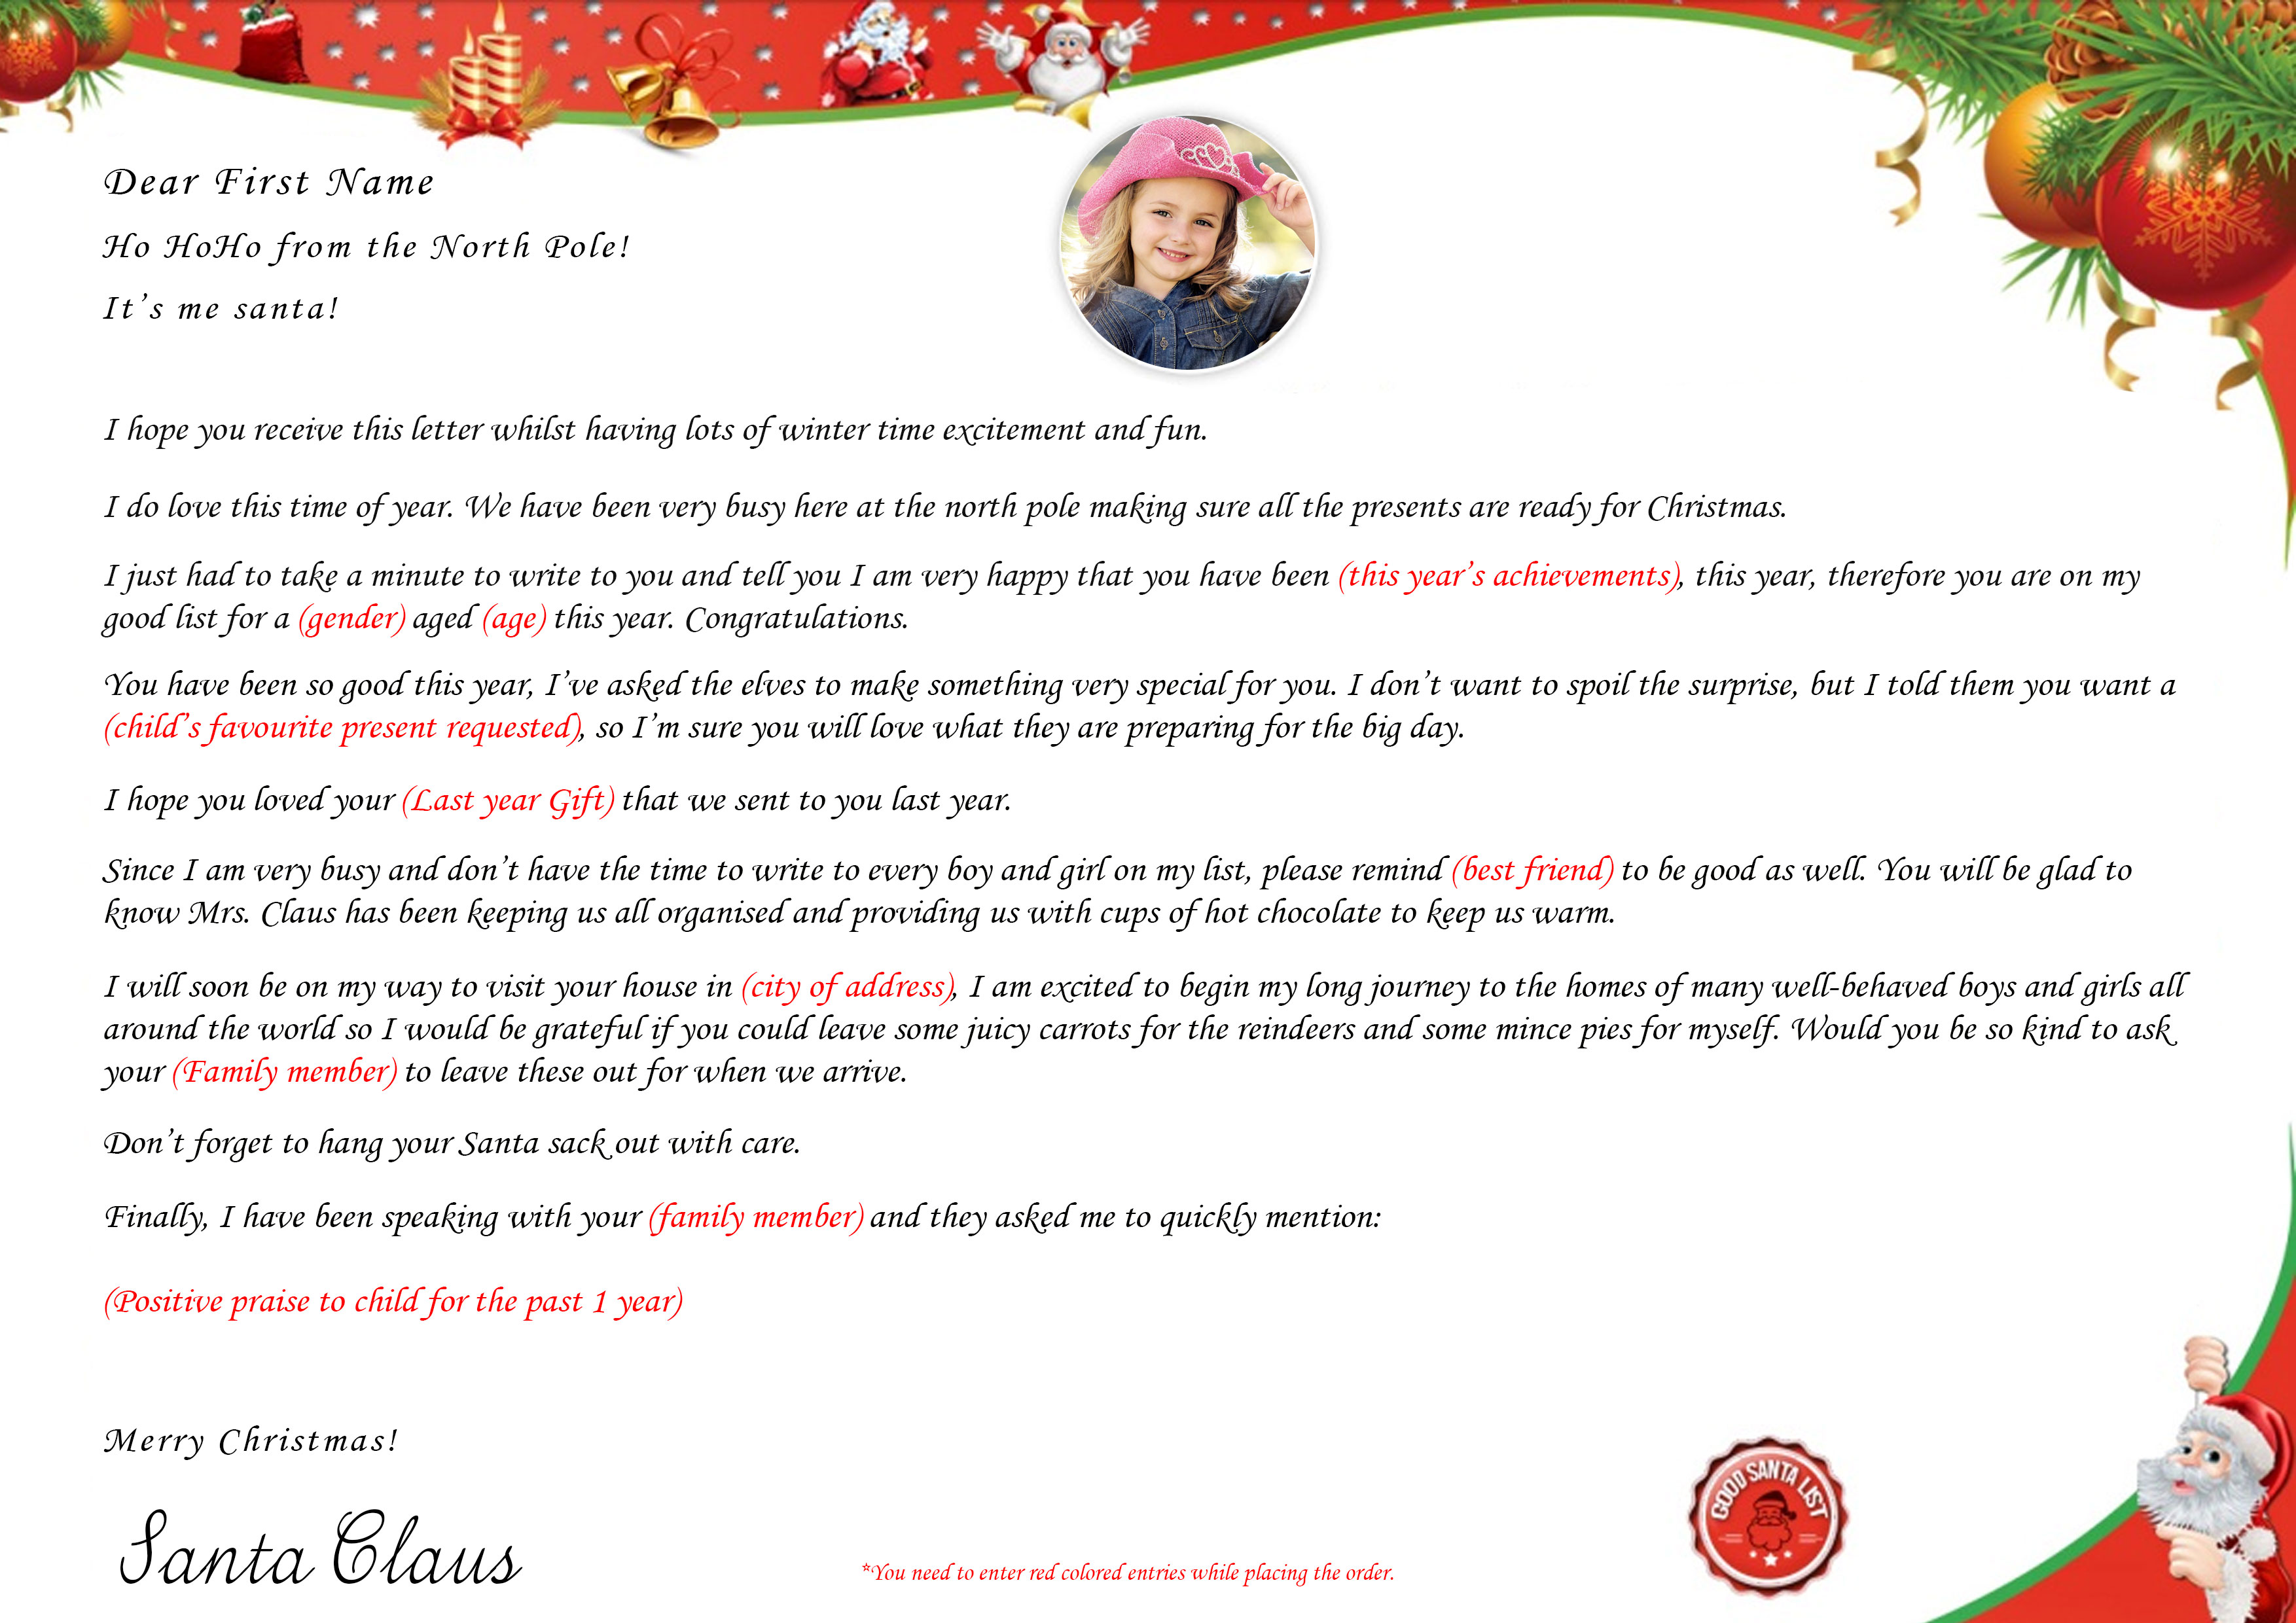 santa personalize letter from santa claus